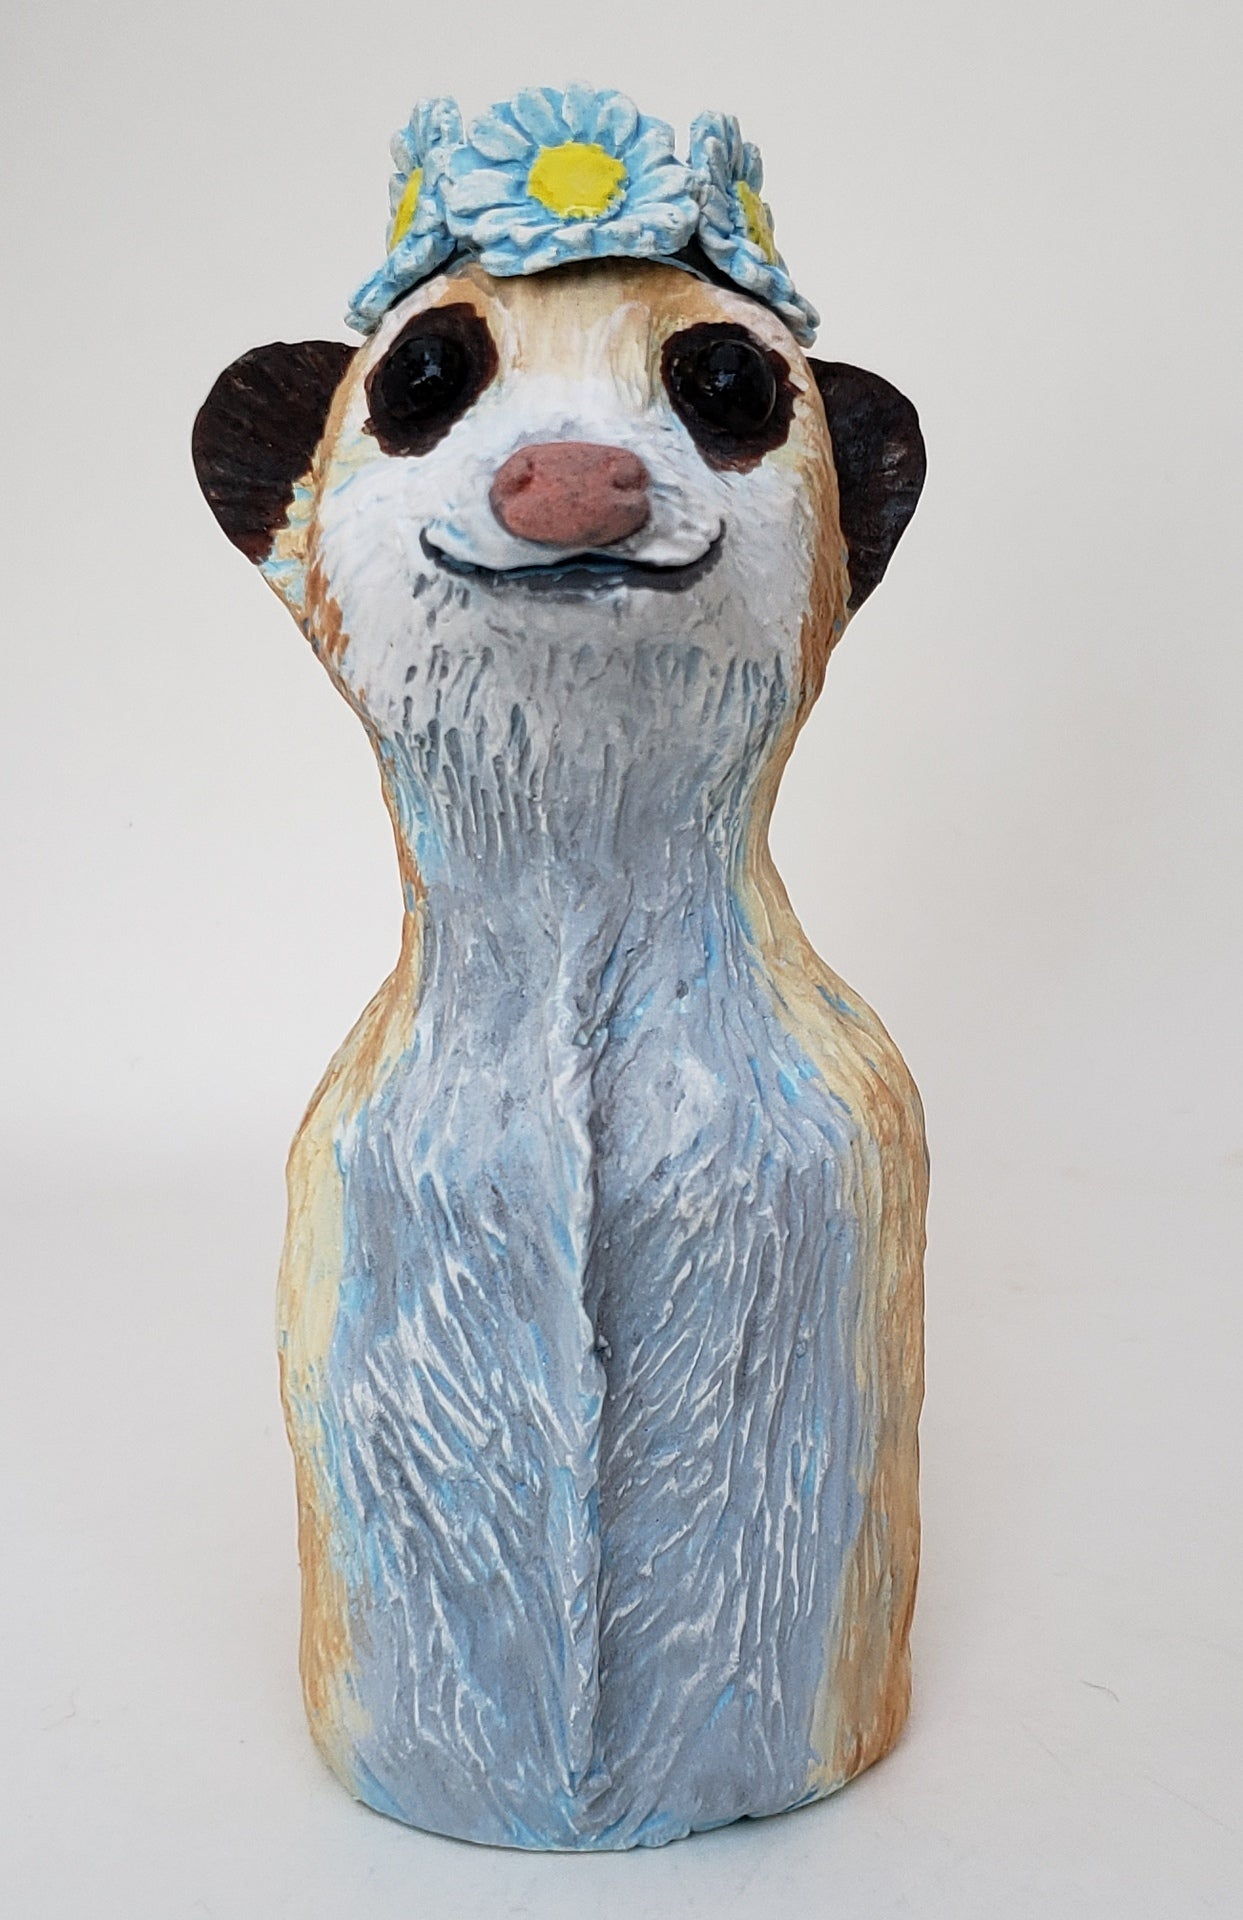 Minnie Meerkat Wearing a Daisy Headband - Artworks by Karen Fincannon